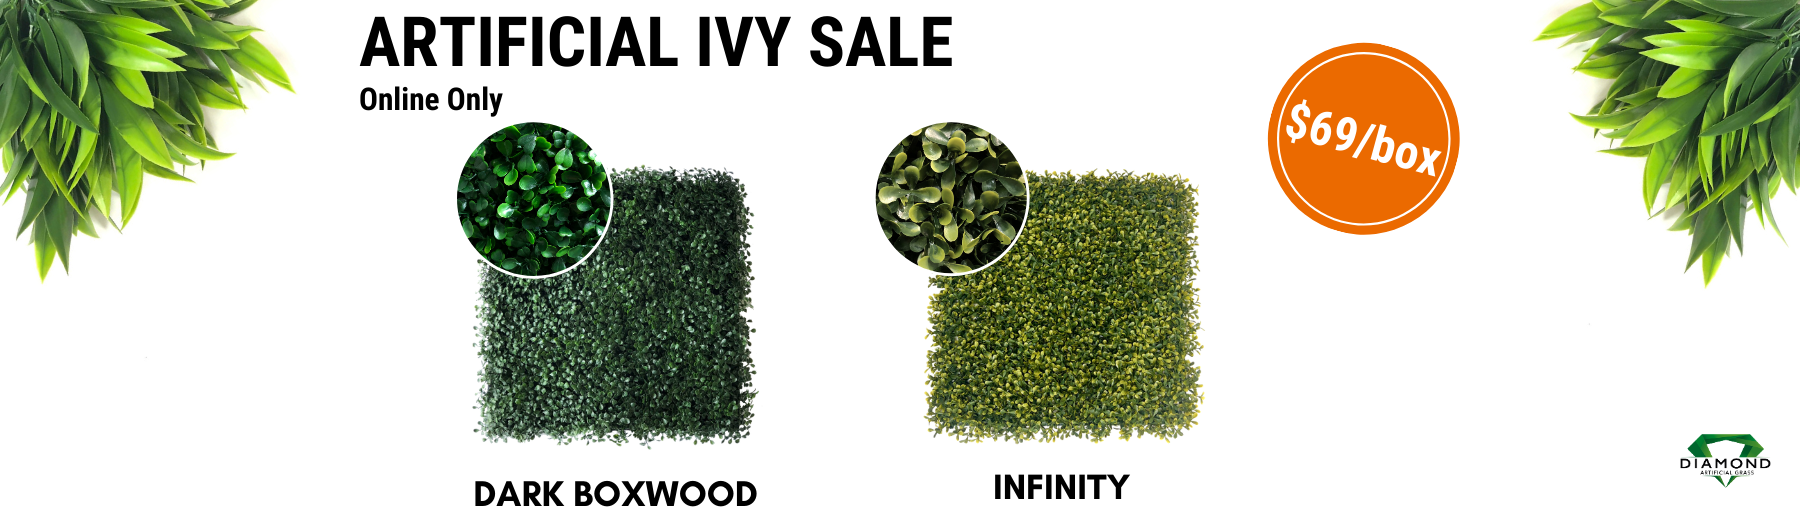 ARTIFICIAL LIVING WALL SALE